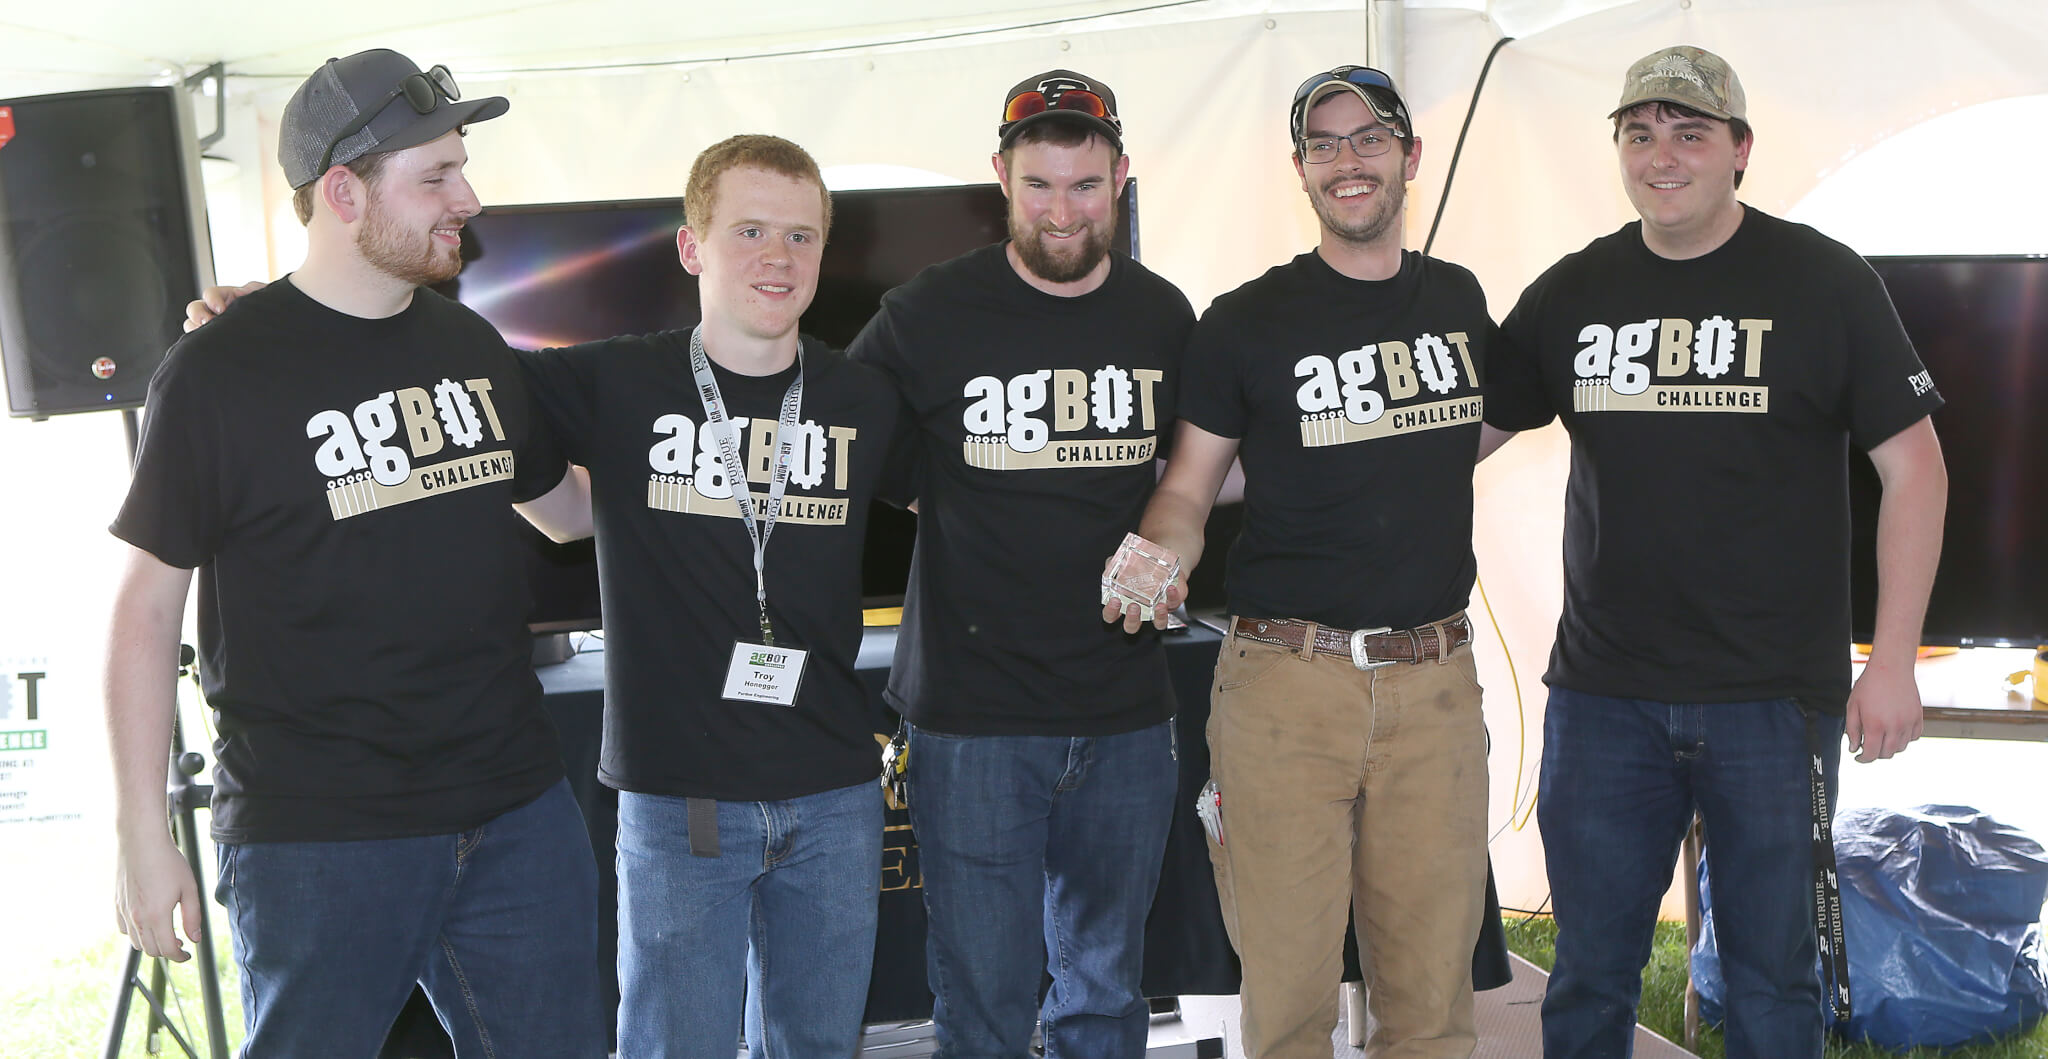 Purdue's agBOT Challenge team accepting their trophy